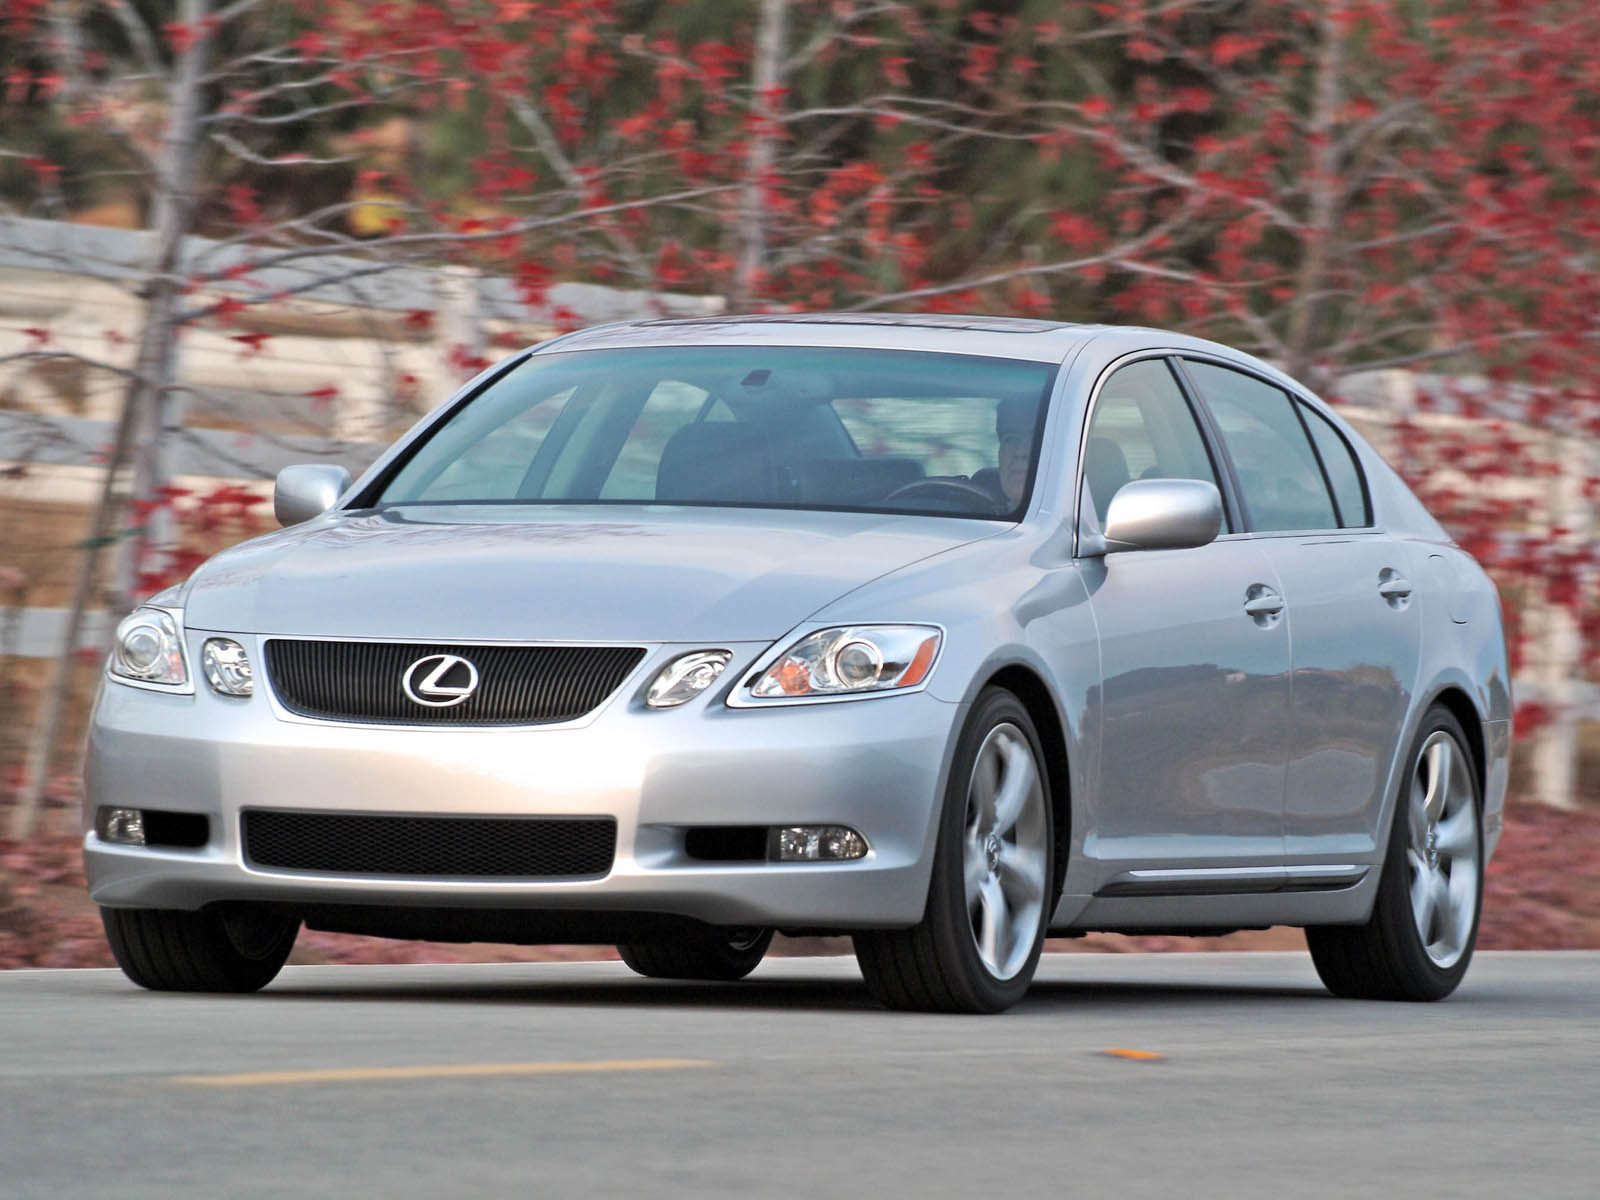 Lexus GS photo 8944